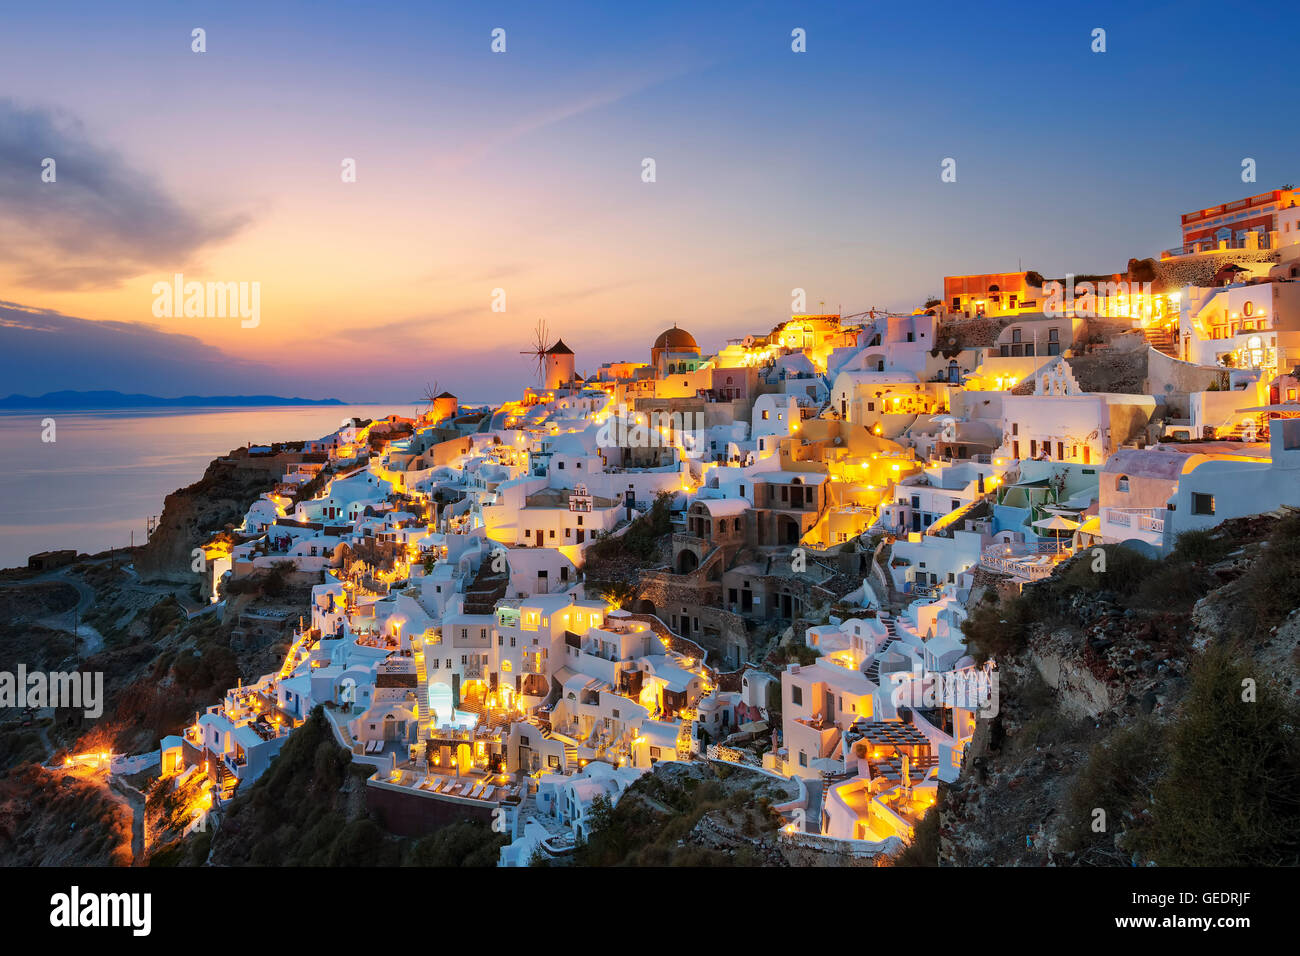 View of Oia at sunset, Santorini - Stock Image